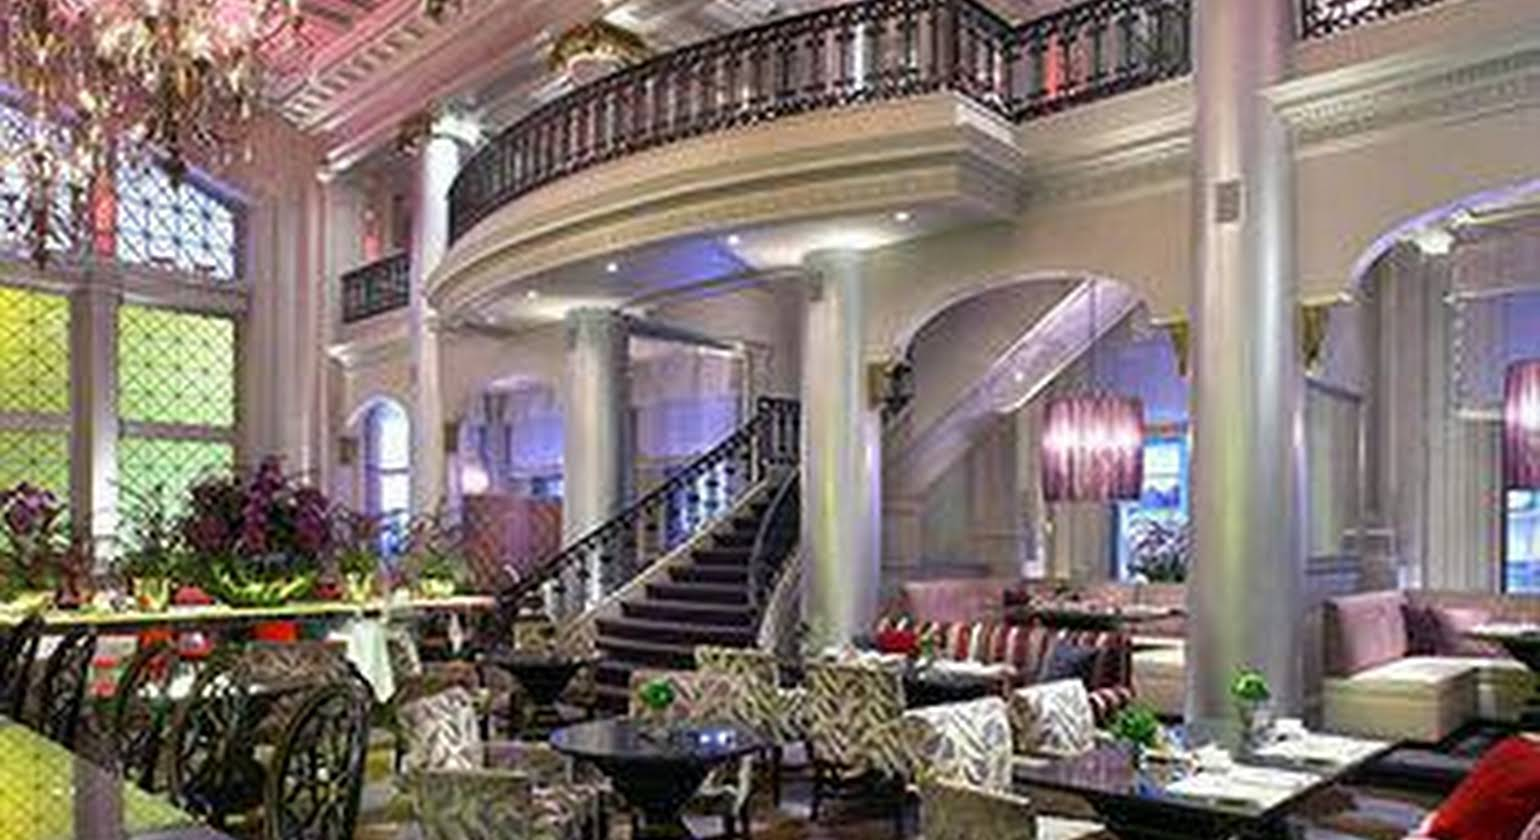 Hotel Le St. James Montreal